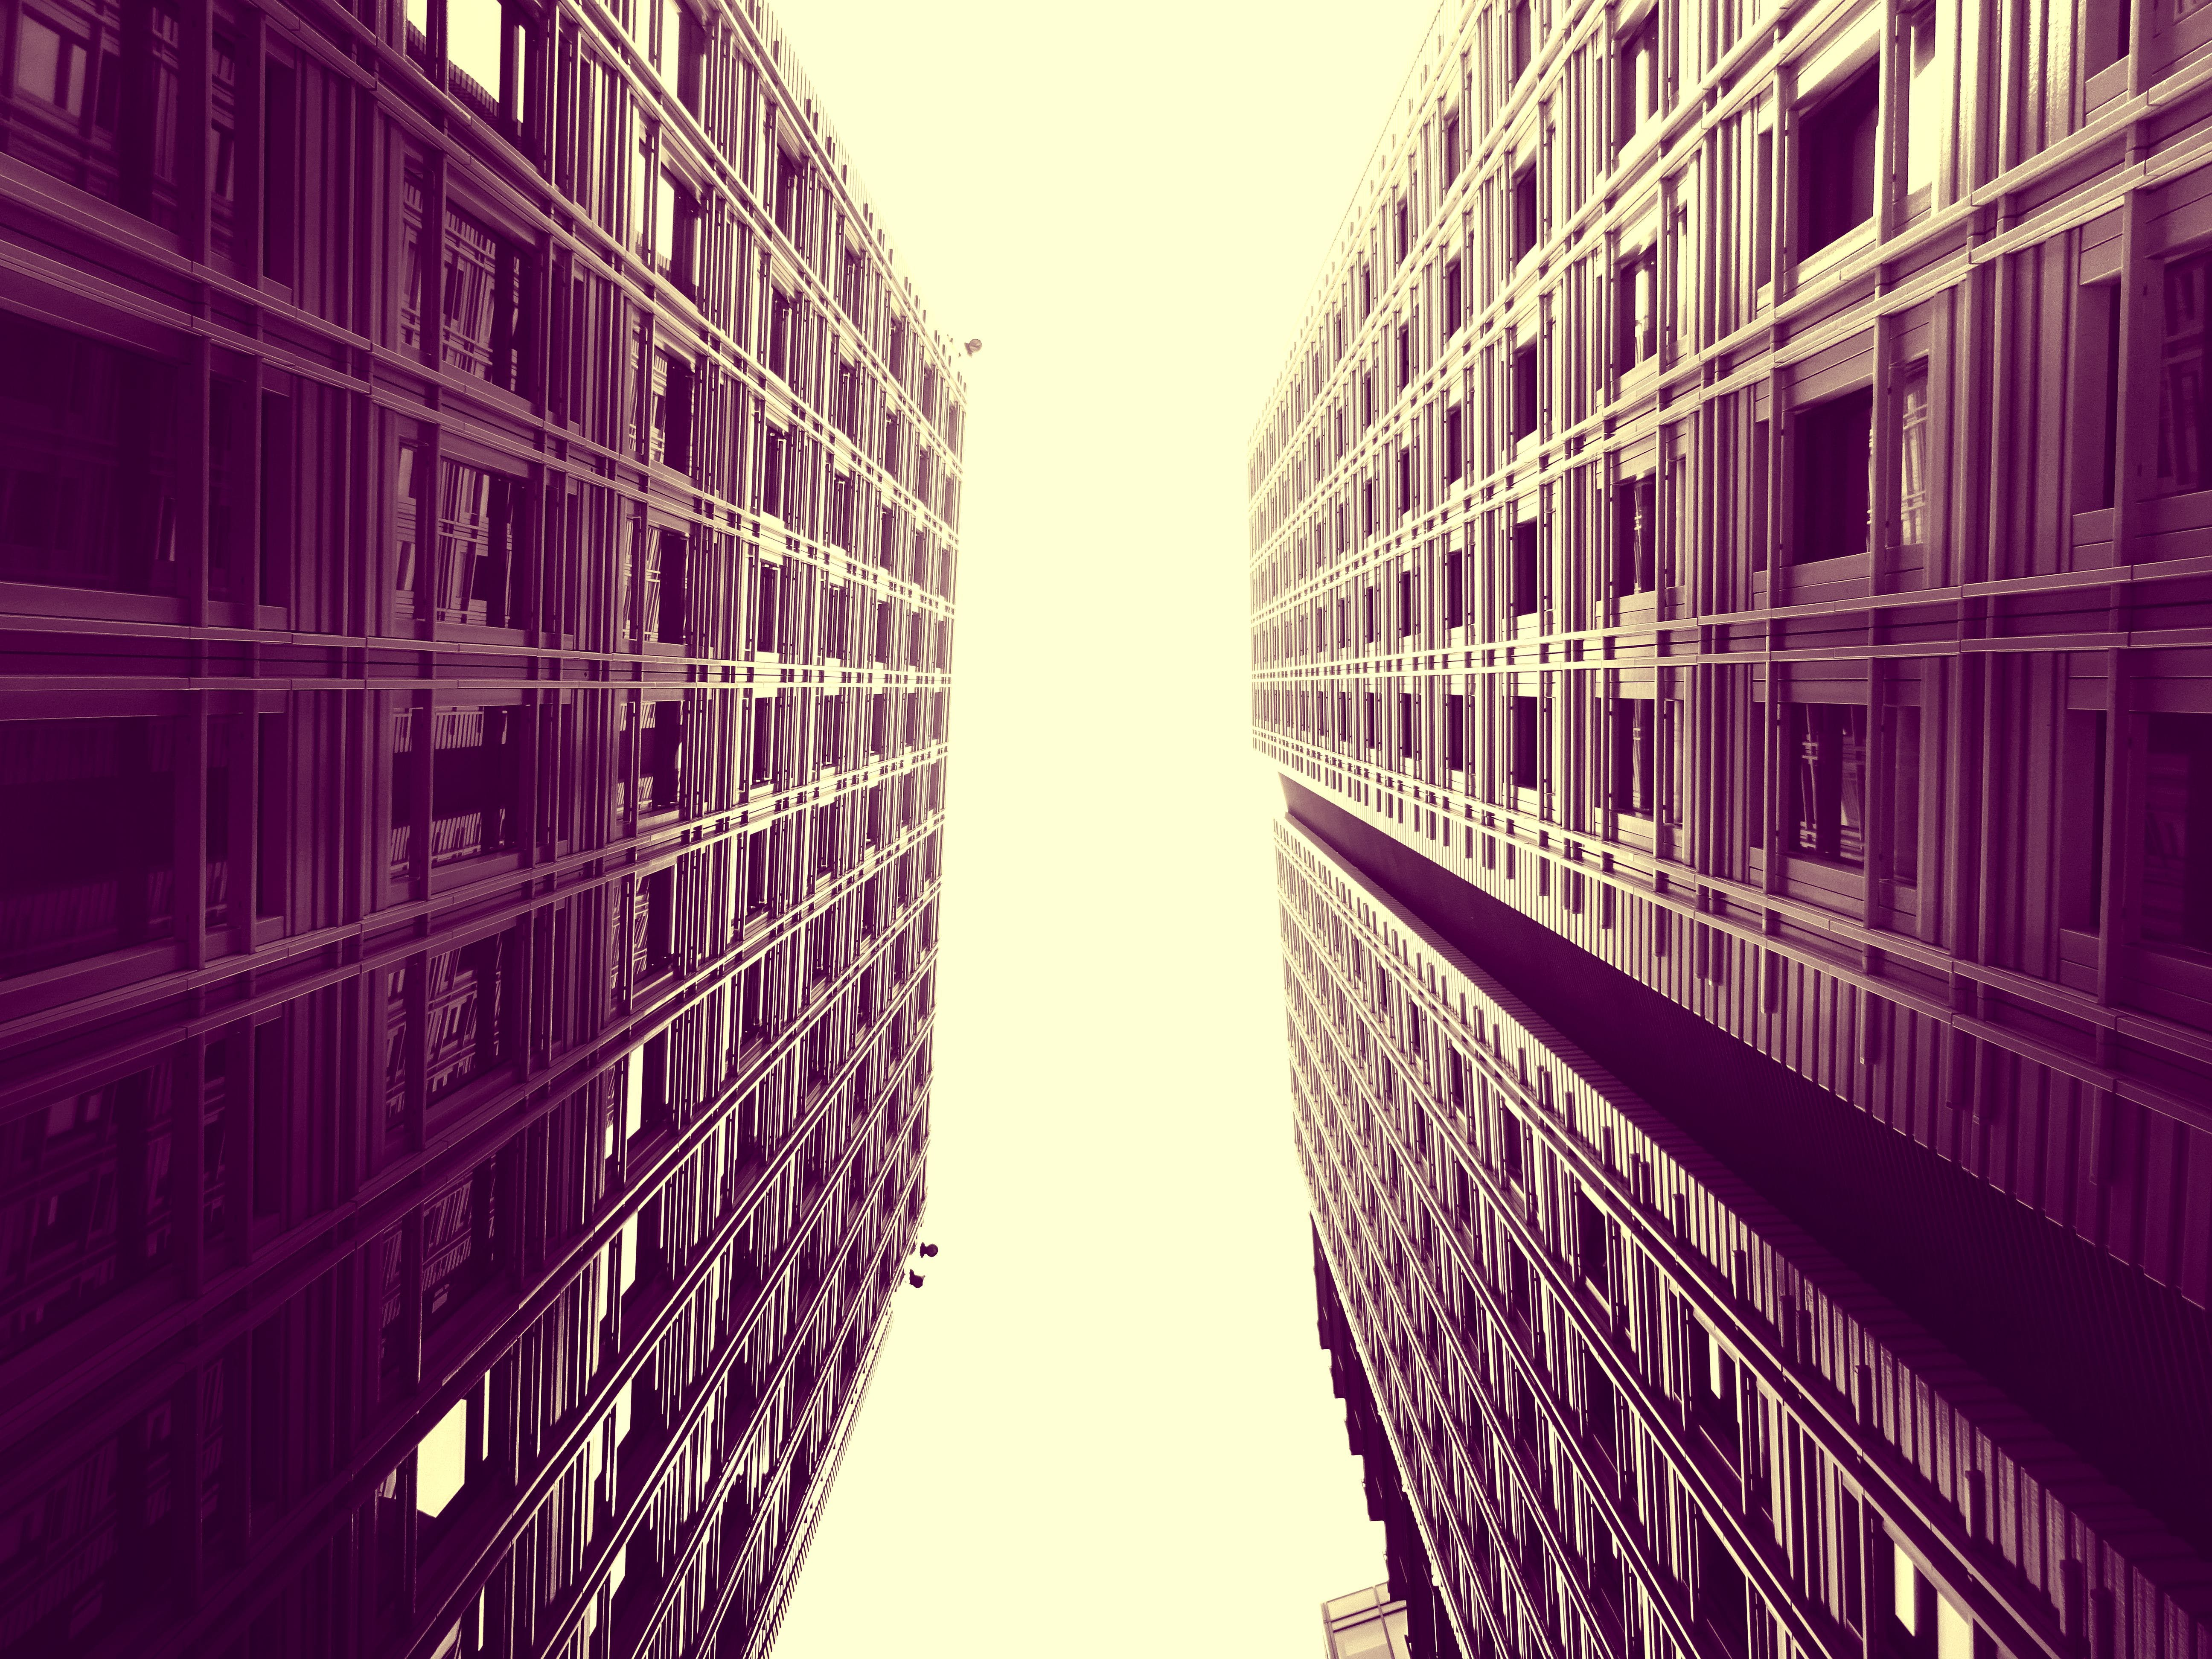 Worm's-eye View of Concrete Buildings